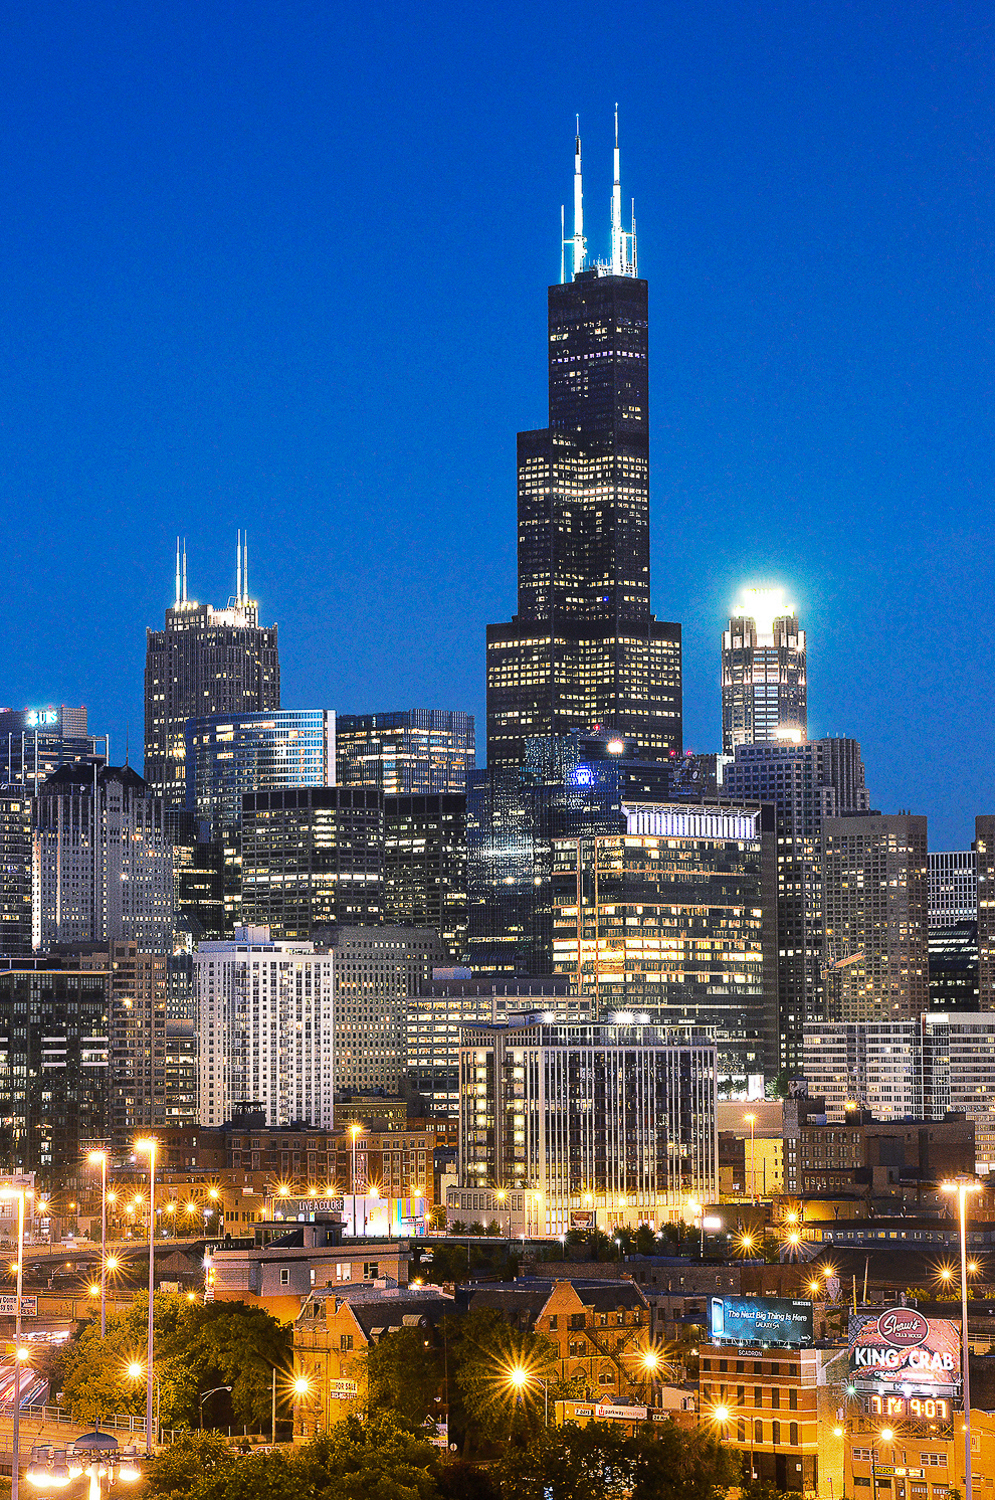 Image Title:  Willis Tower   Mat Sizes:  8x10, 11x14, 16x20   Float Mount Sizes:  12x18, 16x24, 20x30, 24x36, 28x42, 32x48, 36x54, 40x60